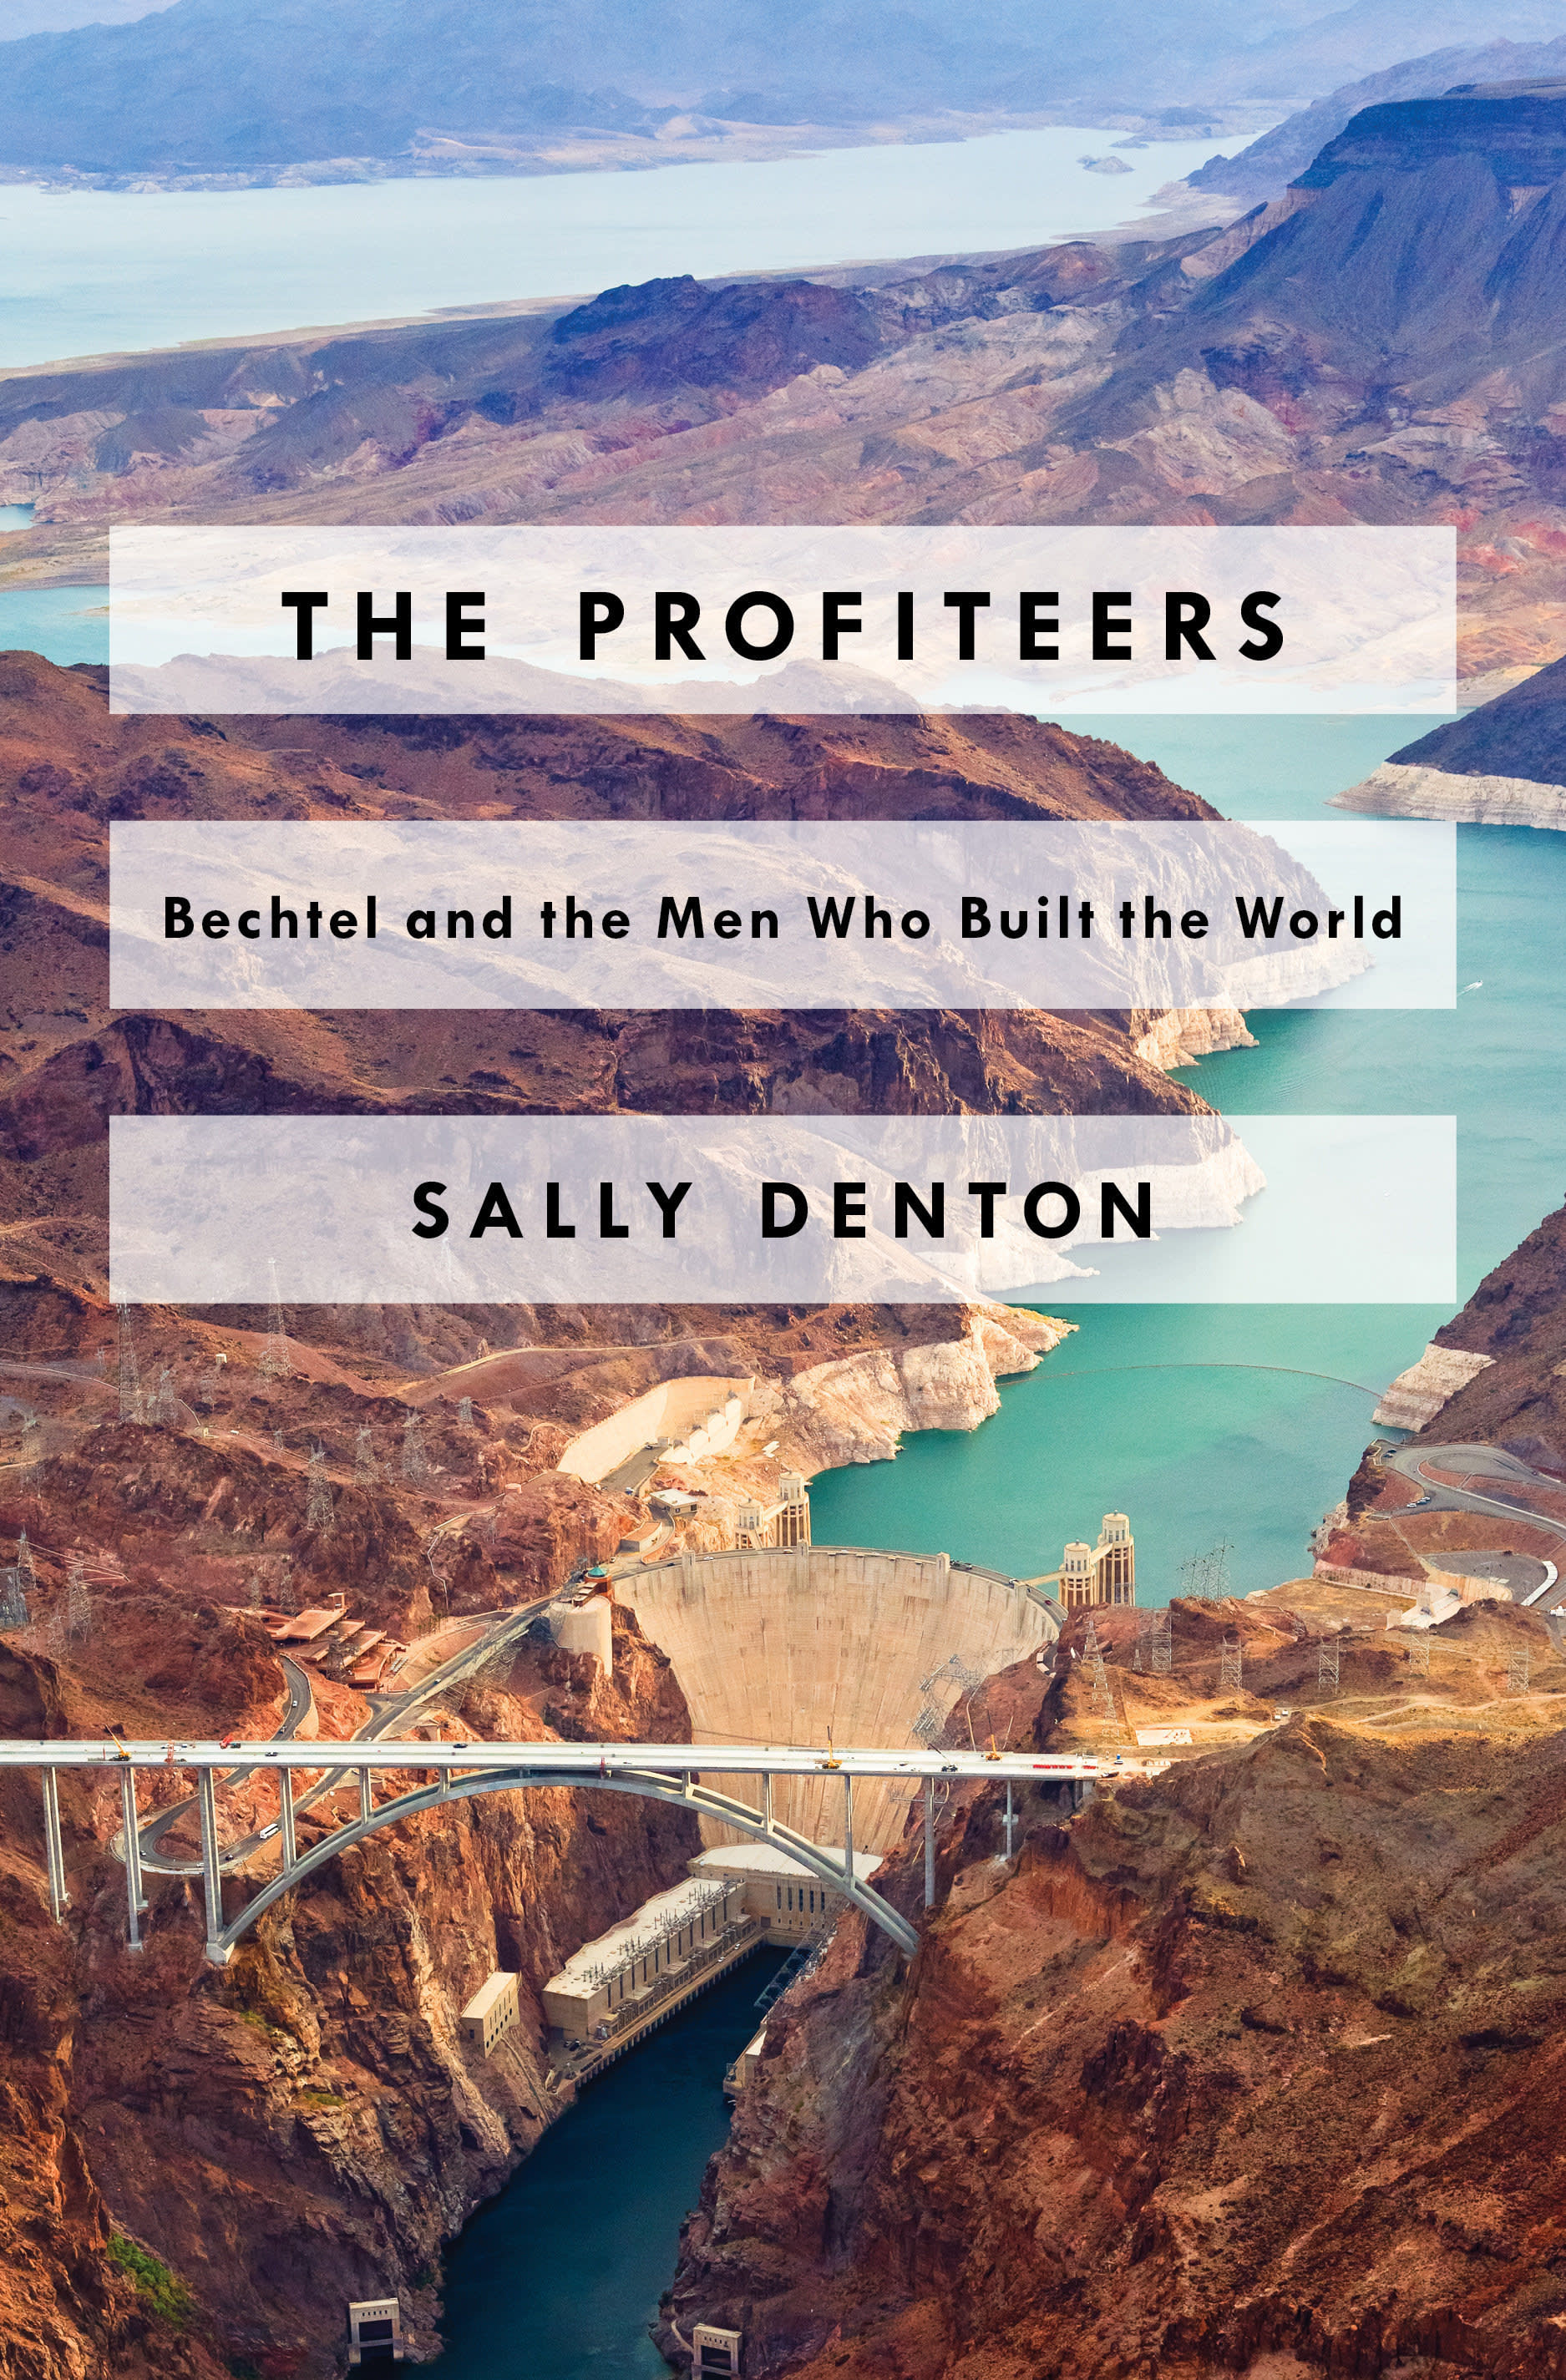 The Profiteers by Sally Denton